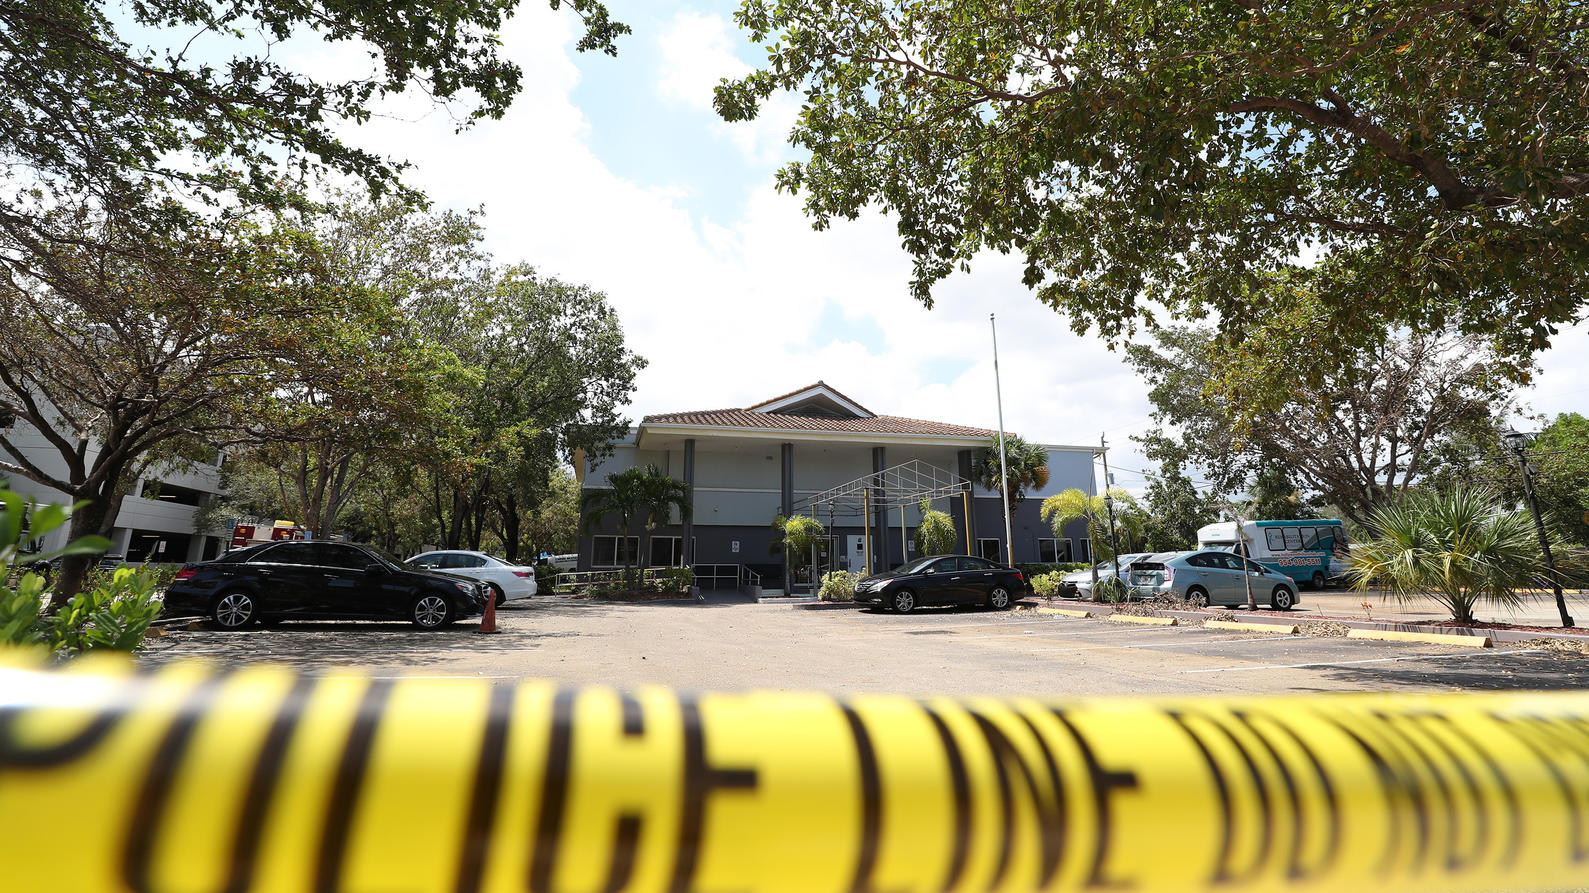 Police surround the Rehabilitation Center at Hollywood Hills, which had no air conditioning after Hurricane Irma knocked out power, on September 13, 2017 in Hollywood, FL, USA. Eight people at a Florida nursing home that was left without power for da